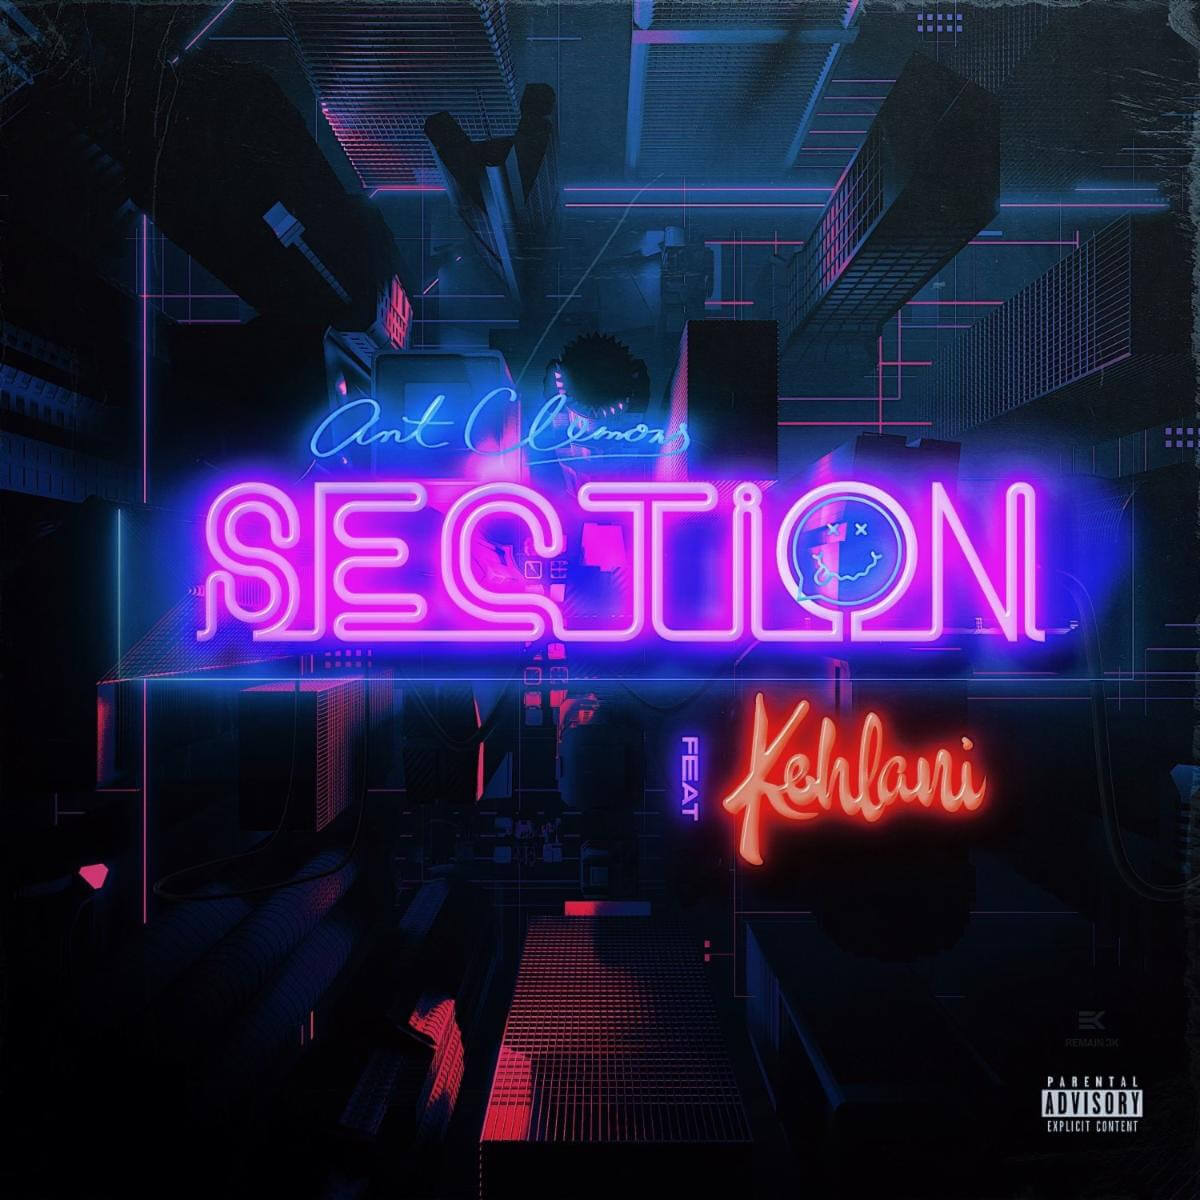 """""""Section"""" by Ant Clemons featuring Kehlani is Northern Transmissions Song of the Day. The track is off his current EP Happy 2 Be Here"""